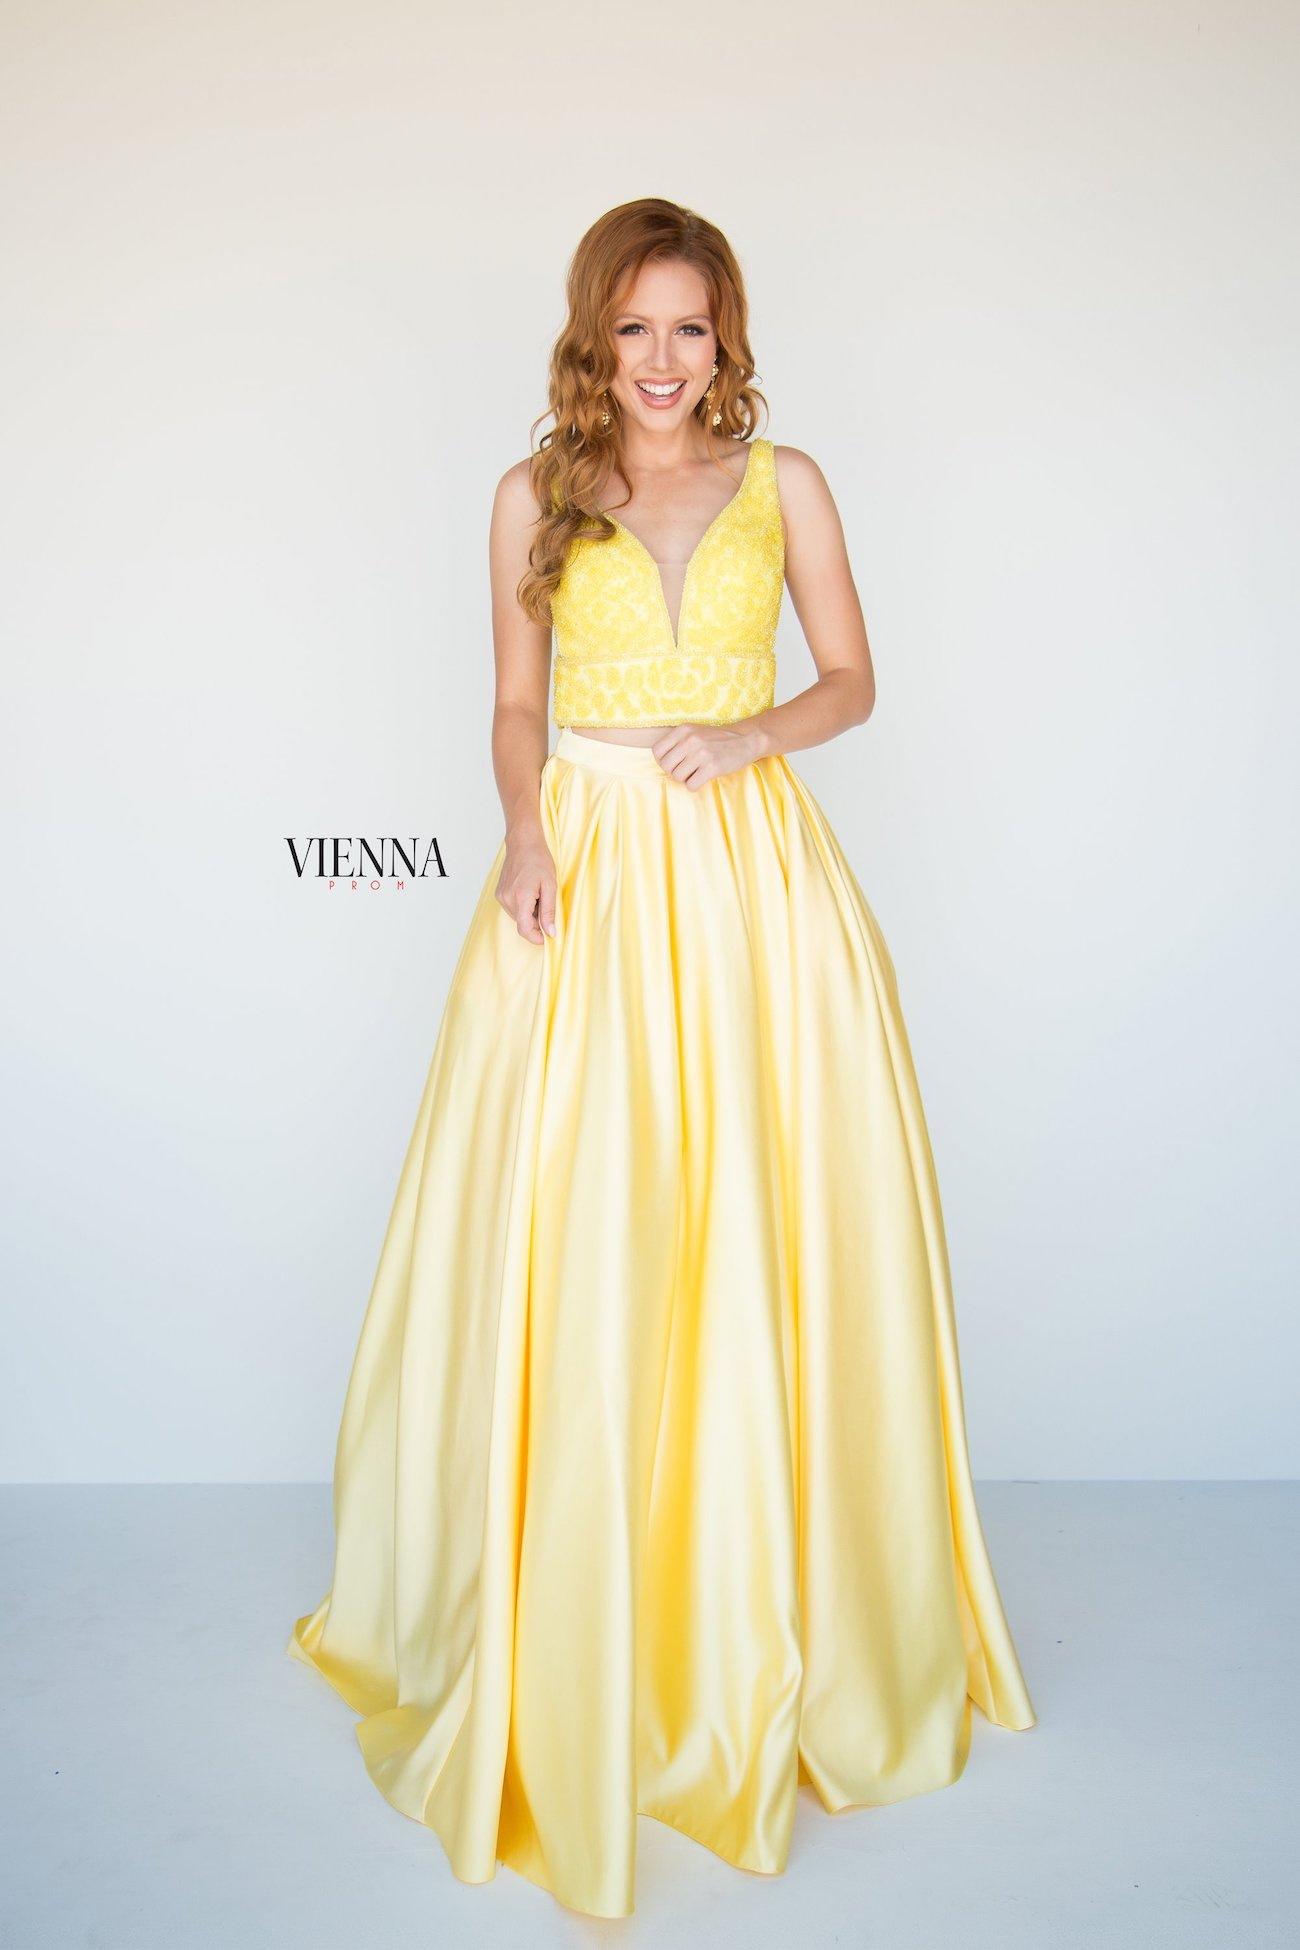 Style 7816 Vienna Yellow Size 12 Pageant Backless Plus Size Tall Height A-line Dress on Queenly